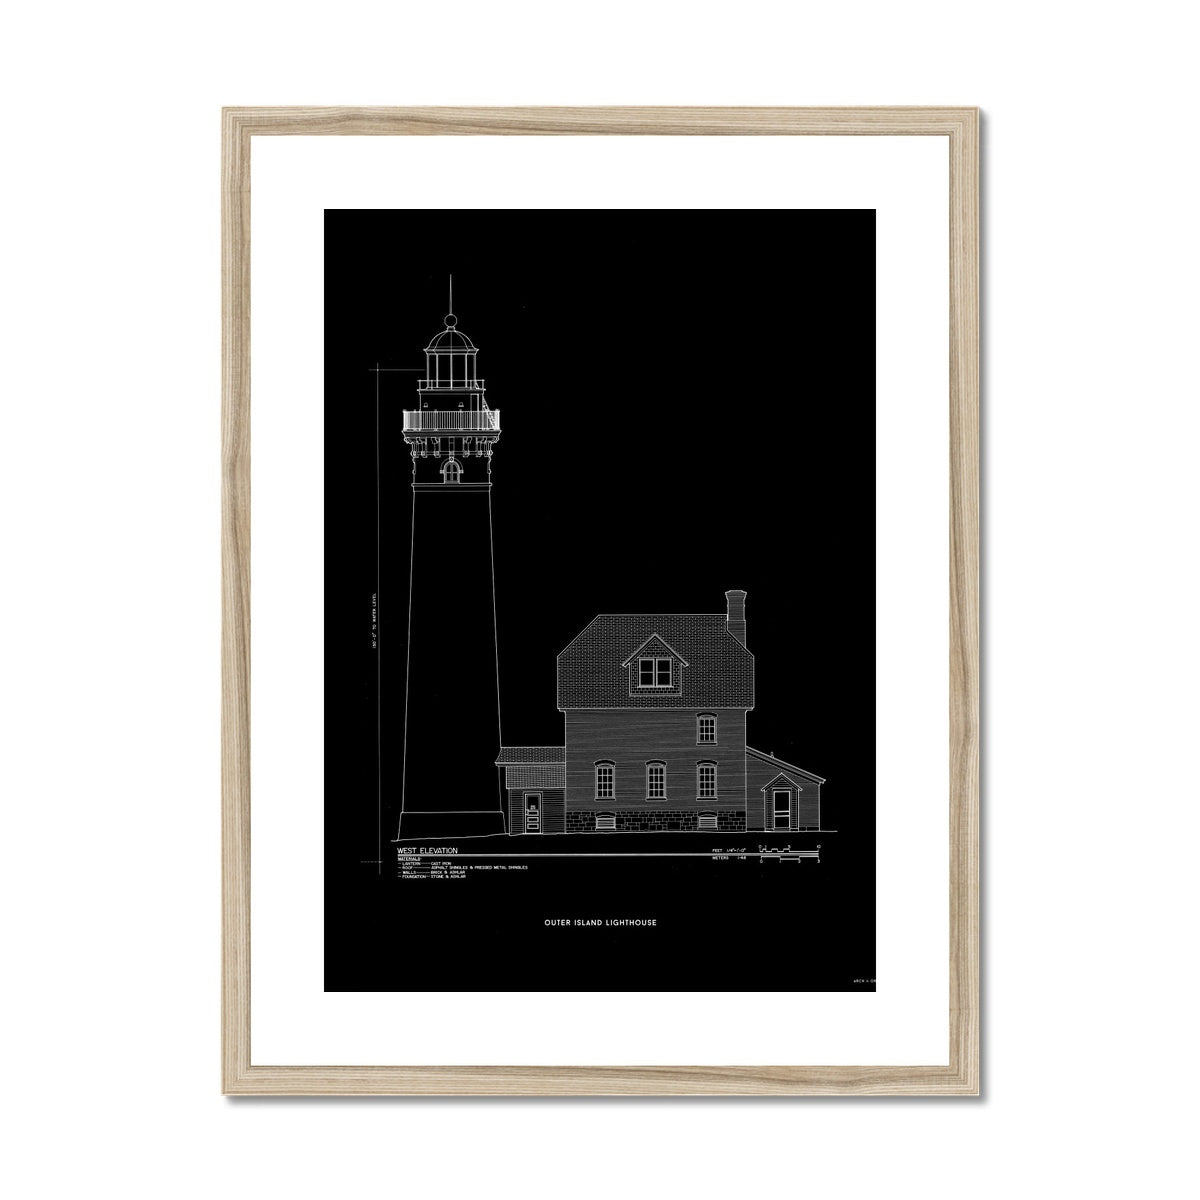 Outer Island Lighthouse - West Elevation - Black -  Framed & Mounted Print